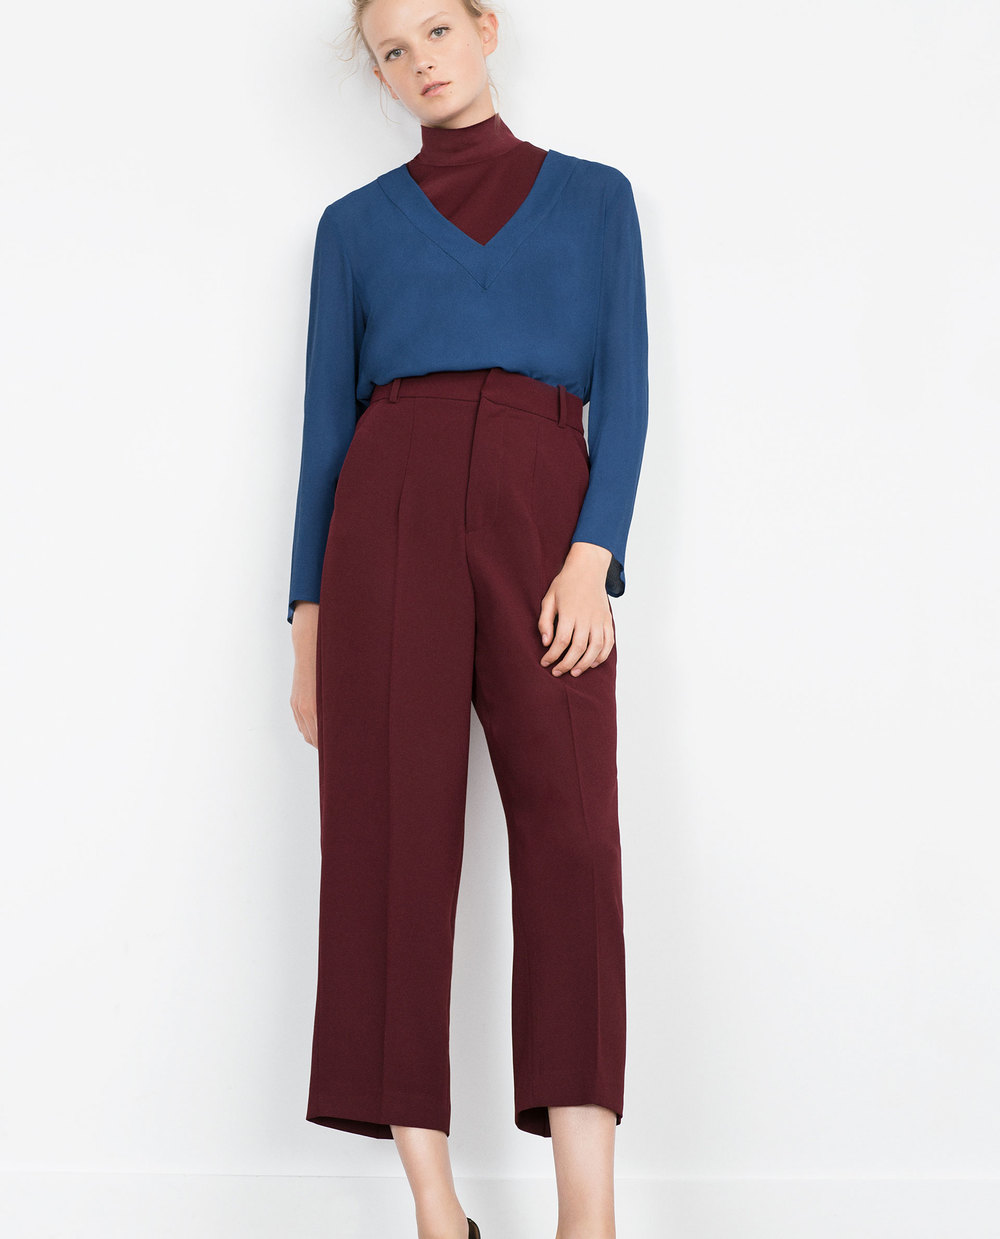 High Waist Trousers. Zara. $69.